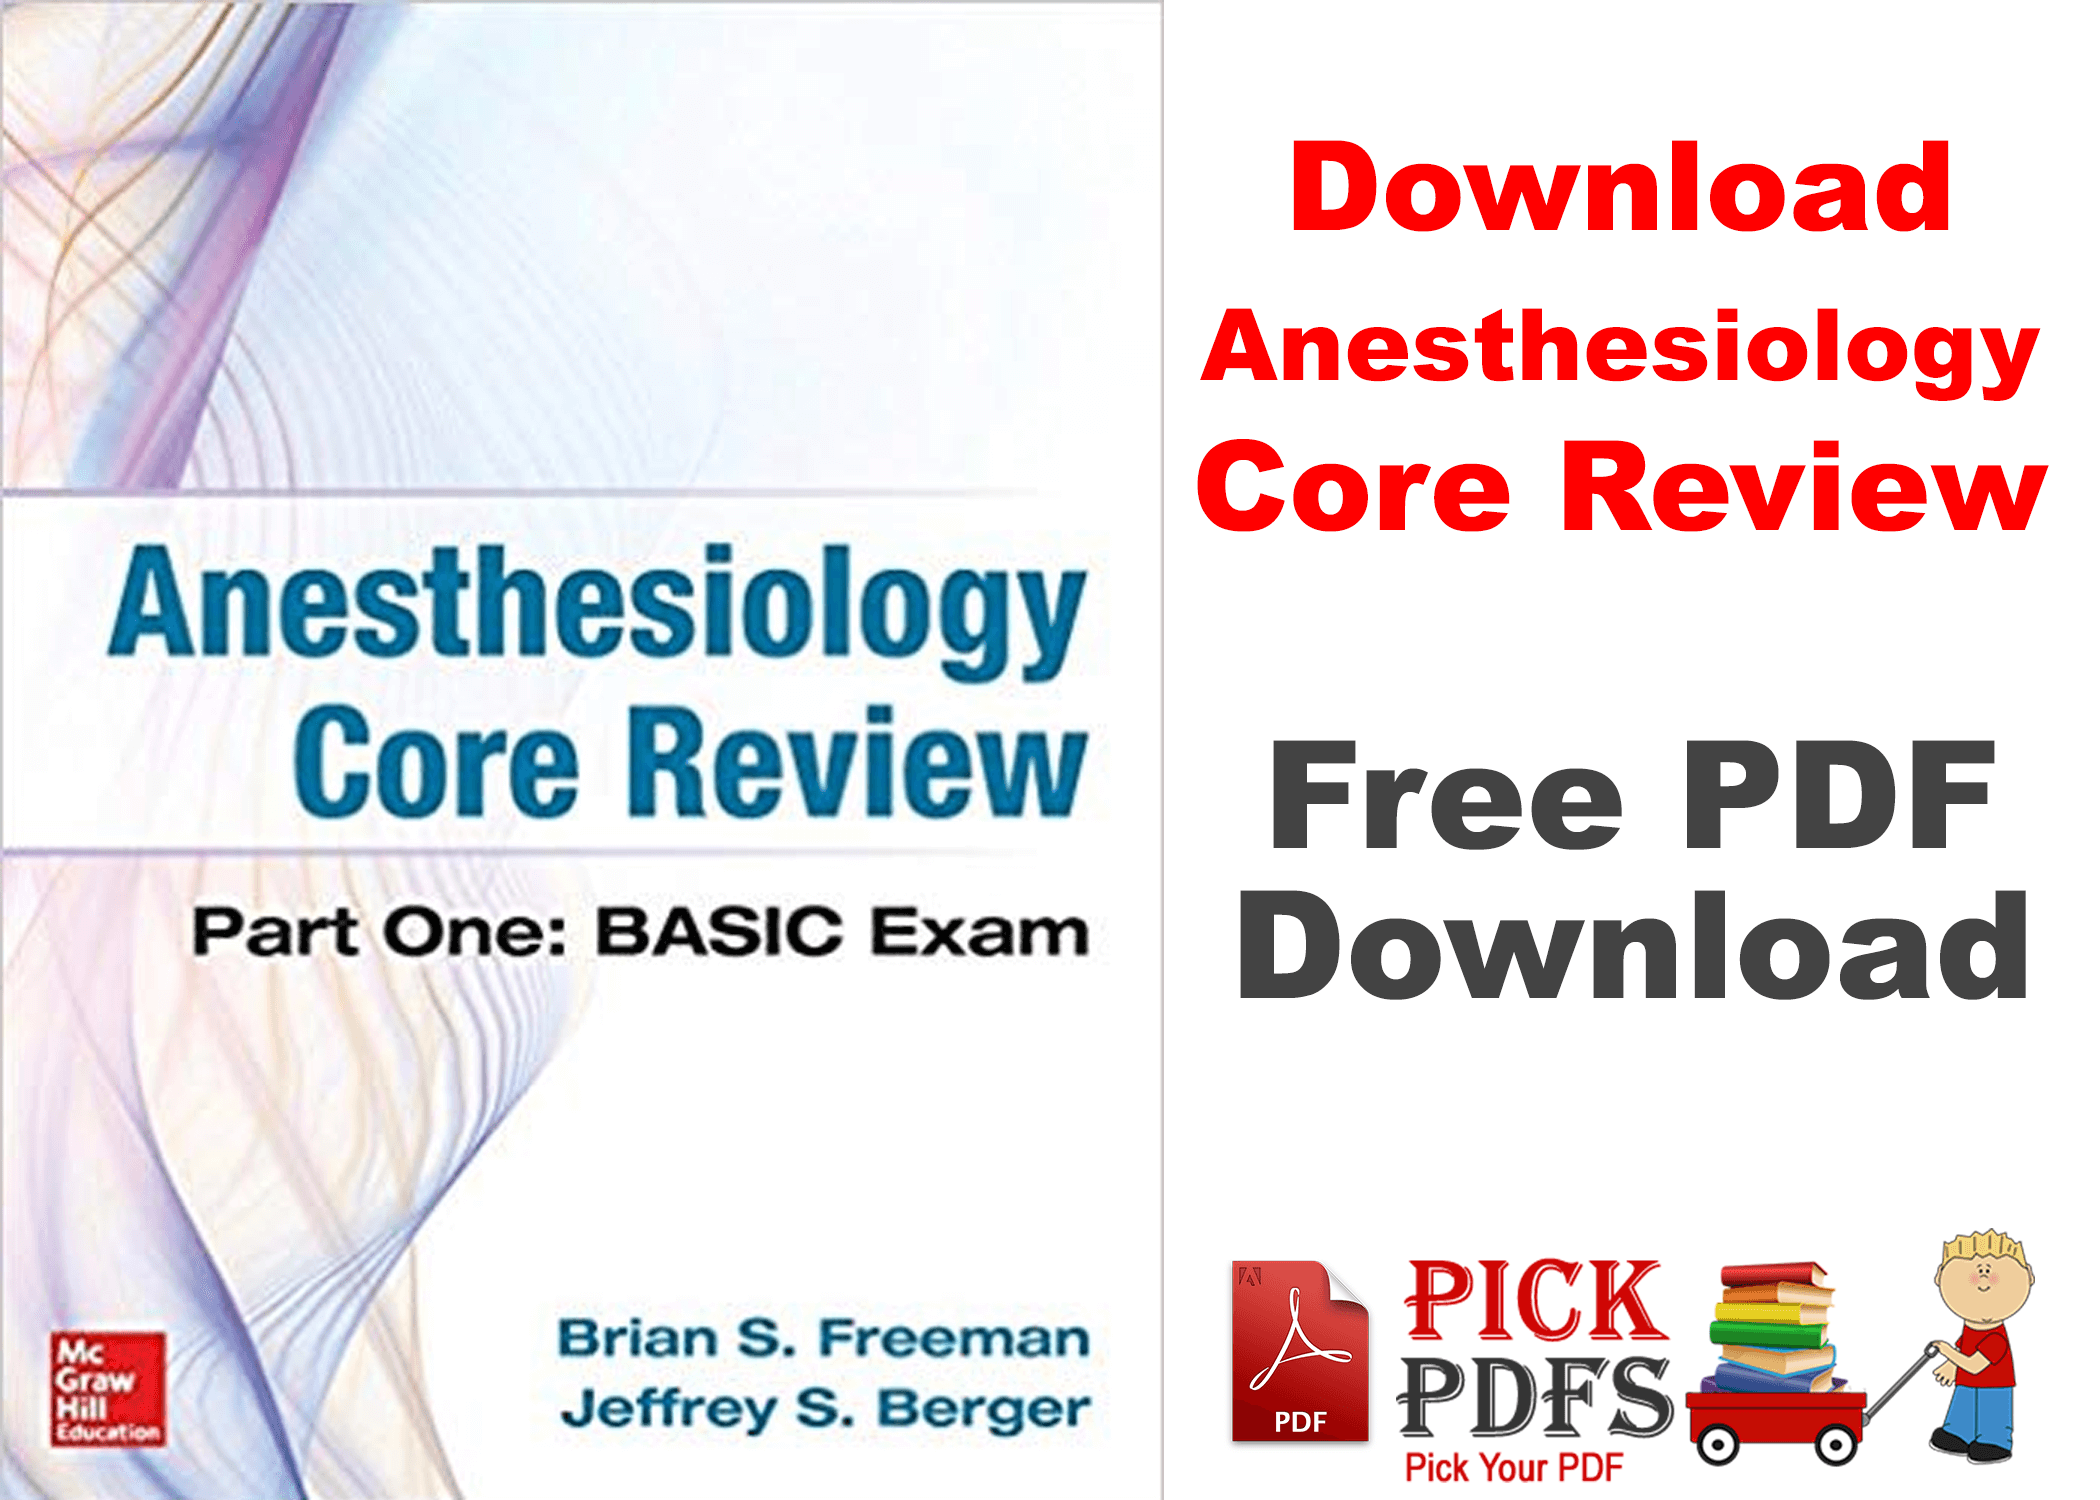 https://pickpdfs.com/analgesia-anaesthesia-and-pregnancy-a-practical-guide-4th-edition-pdf-download/